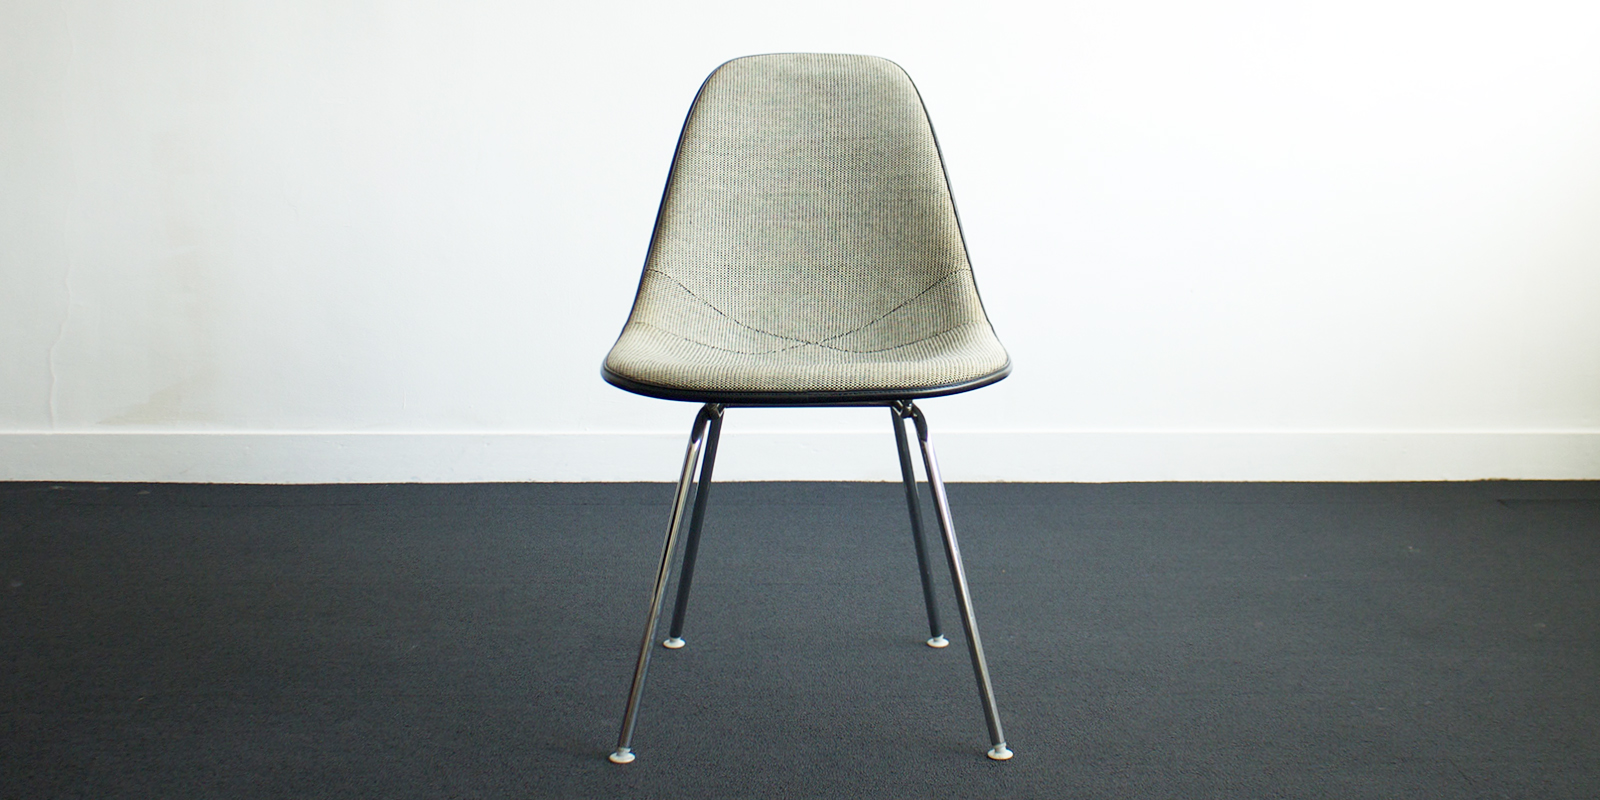 【sold out】Herman Miller シェルサイドチェア(Hベース)